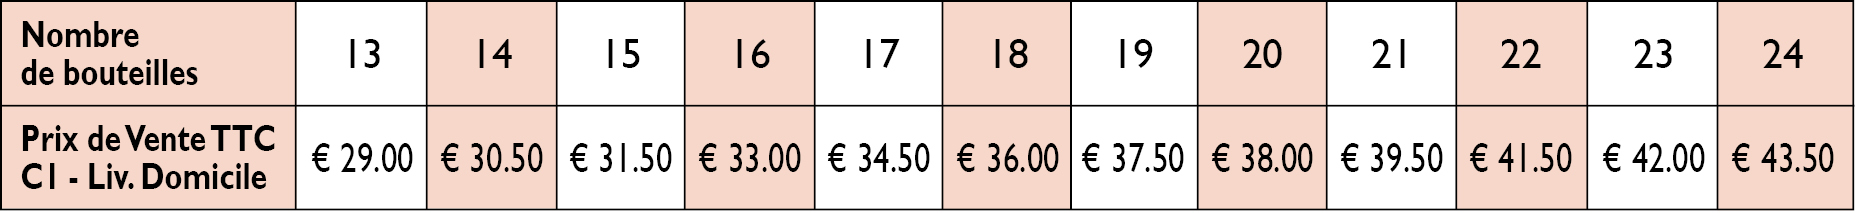 Home delivery rates in Belgium, Germany, Luxembourg and the Netherlands from 13 to 24 bottles